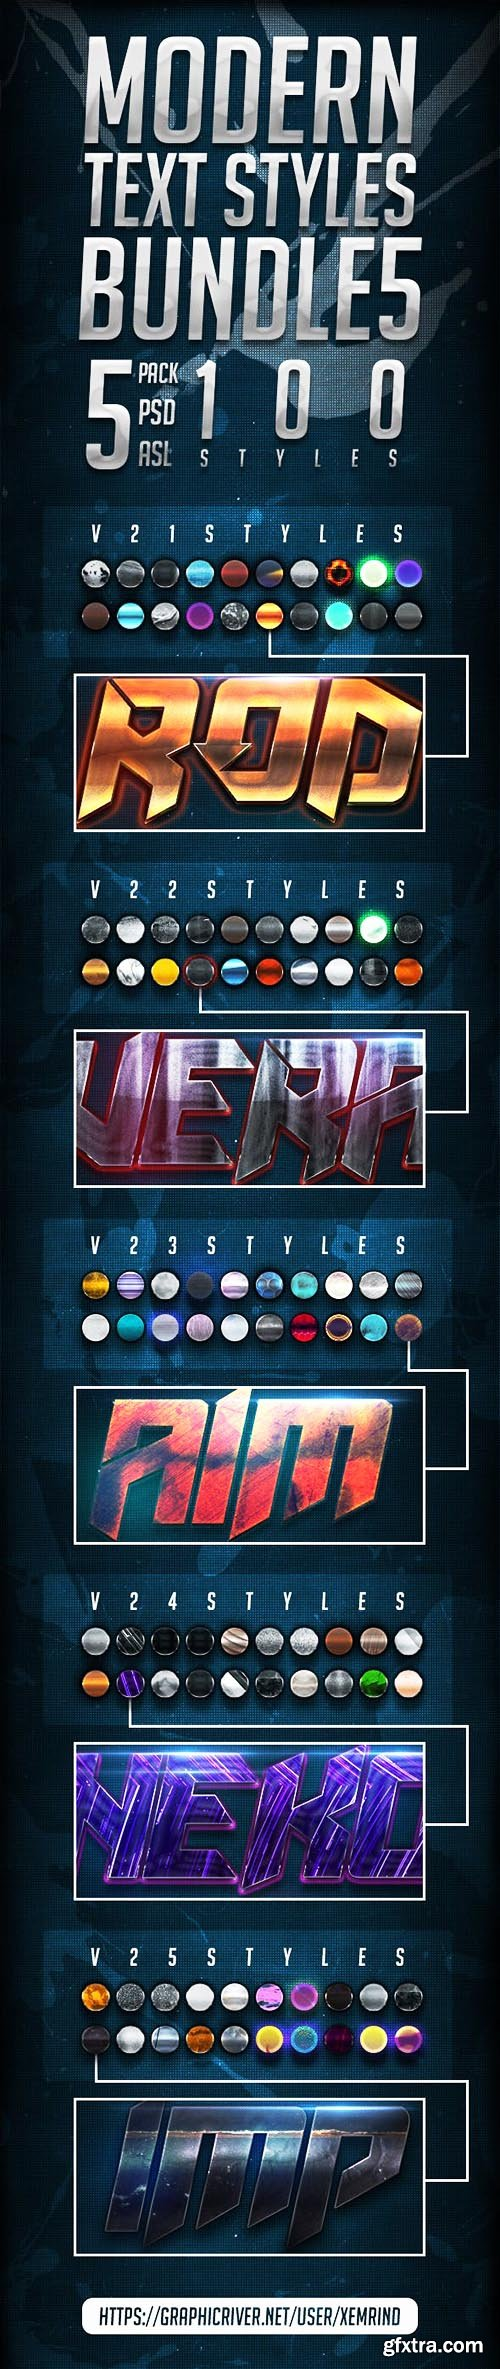 Graphicriver Modern Text Styles Bundle 5 22995173